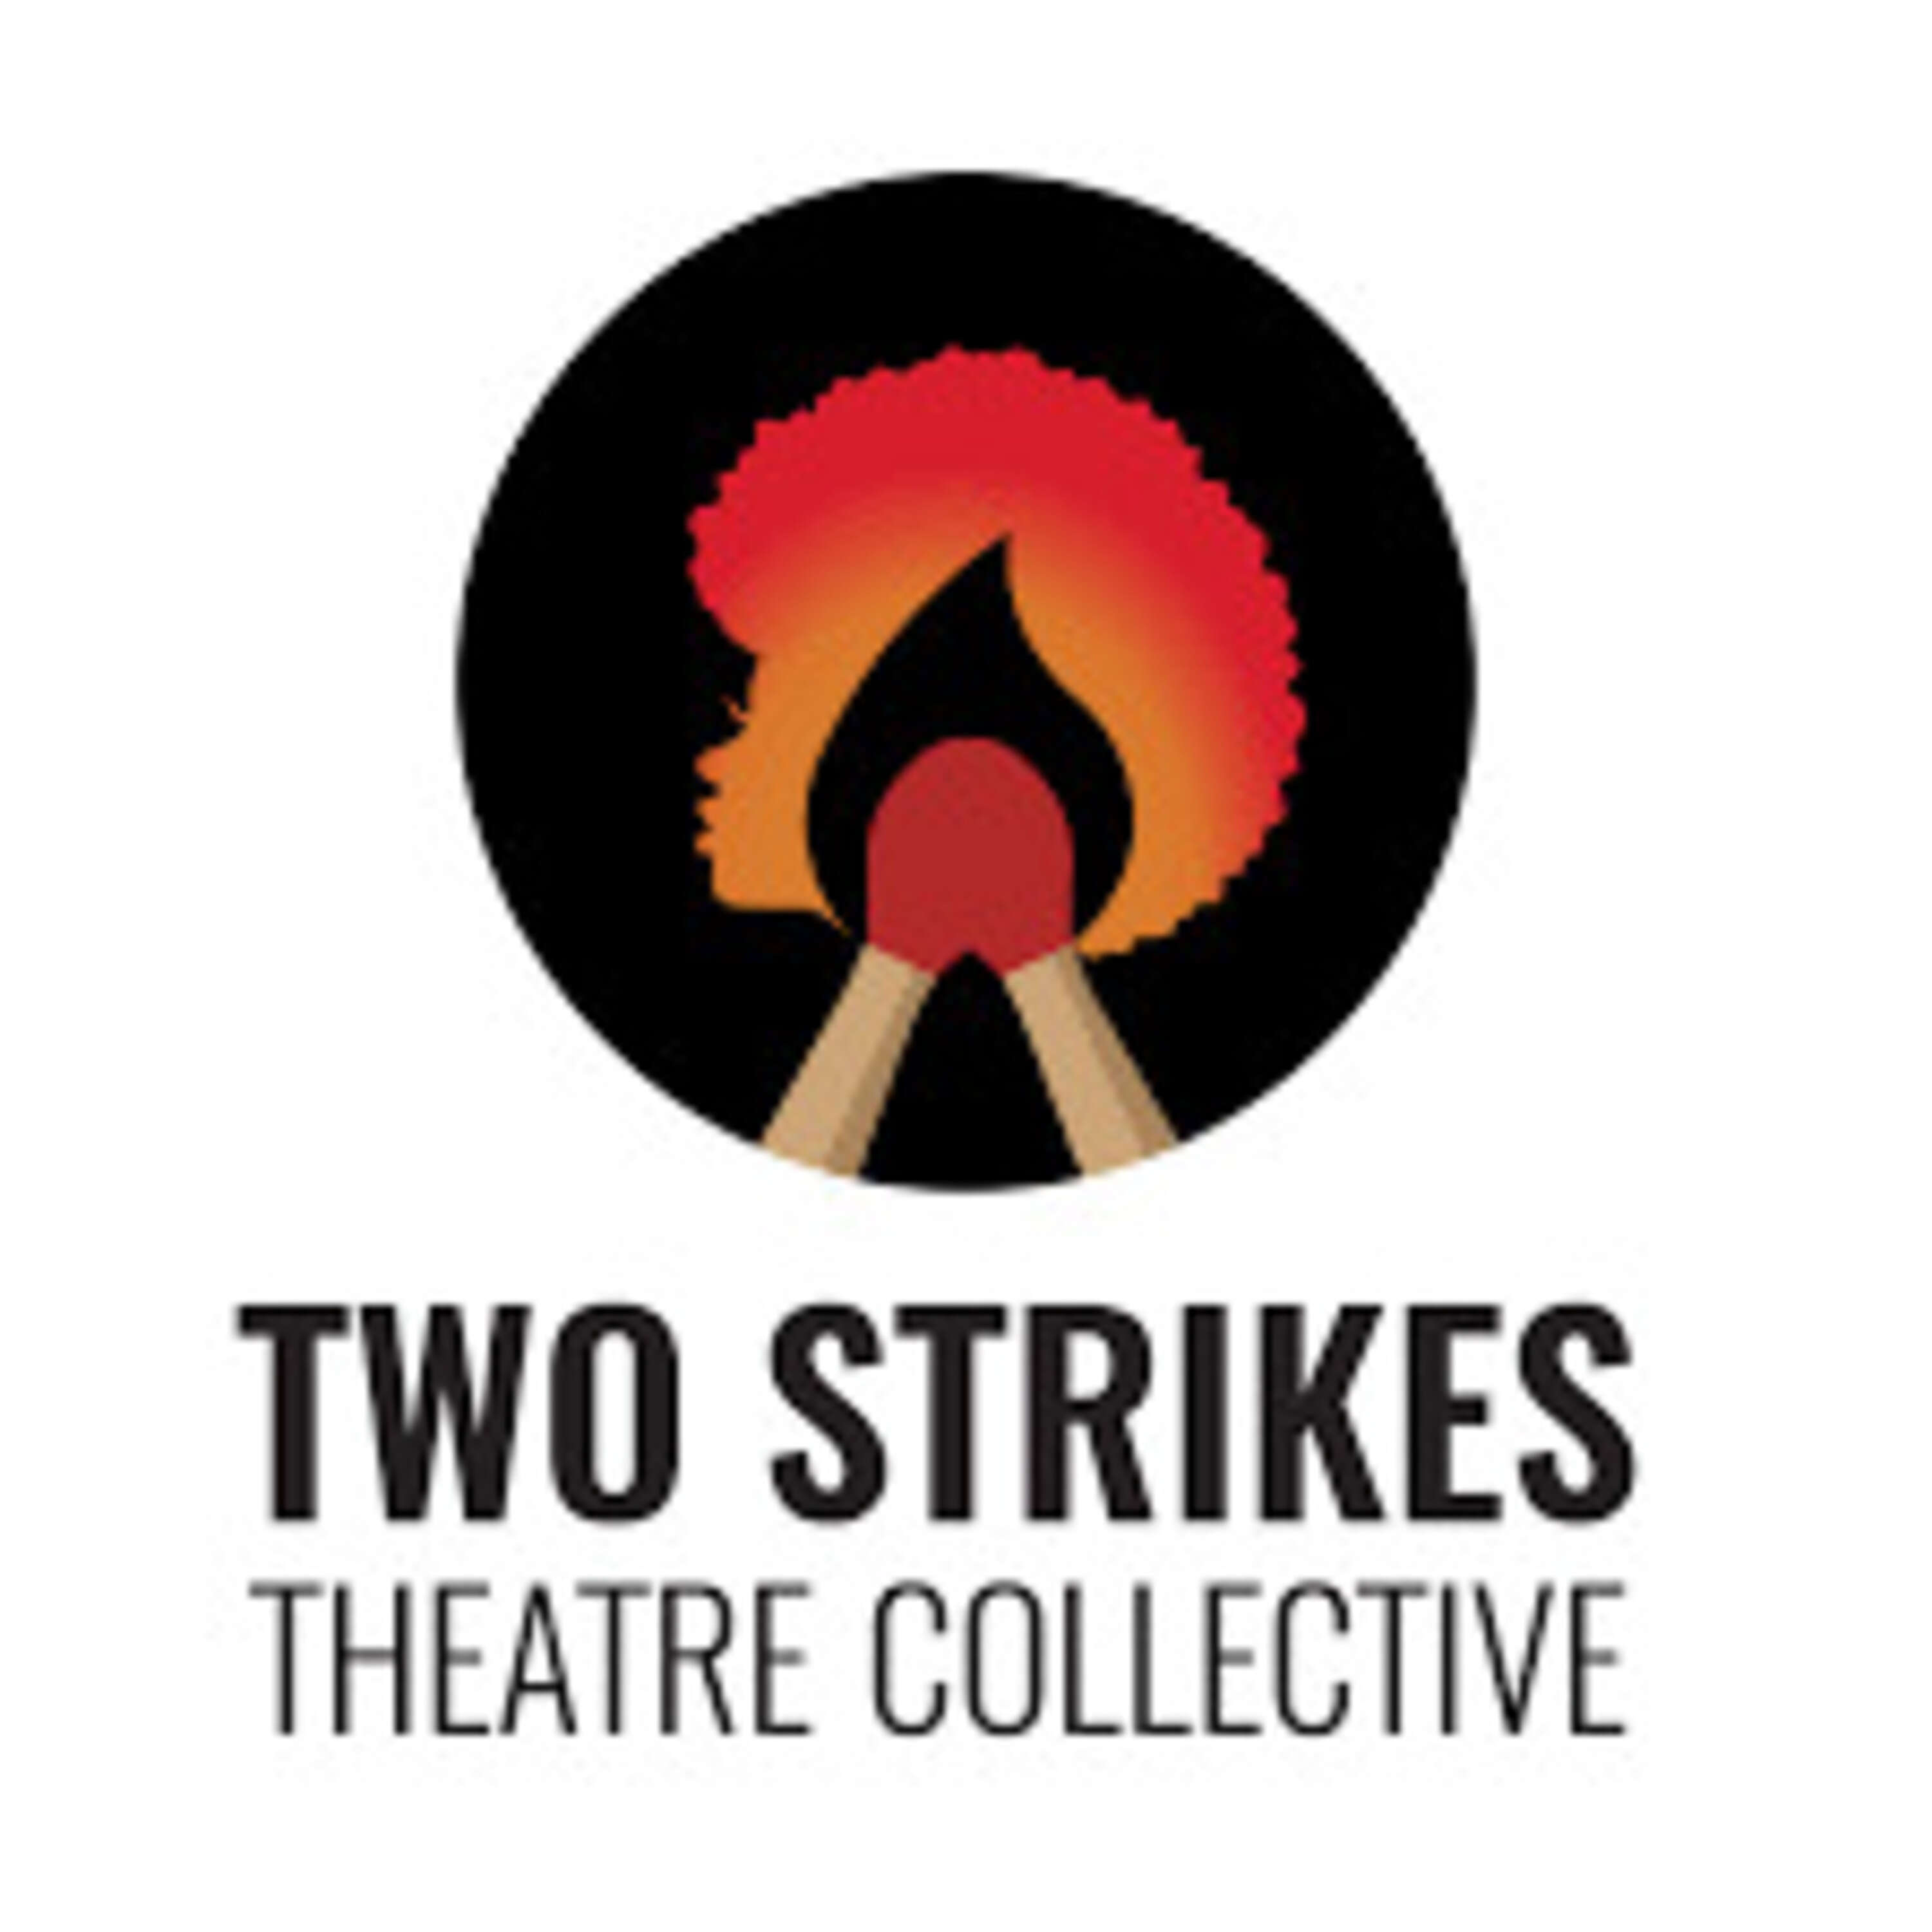 Aladrian Wetzel and Christen Cromwell of Two Strikes Theatre Collective